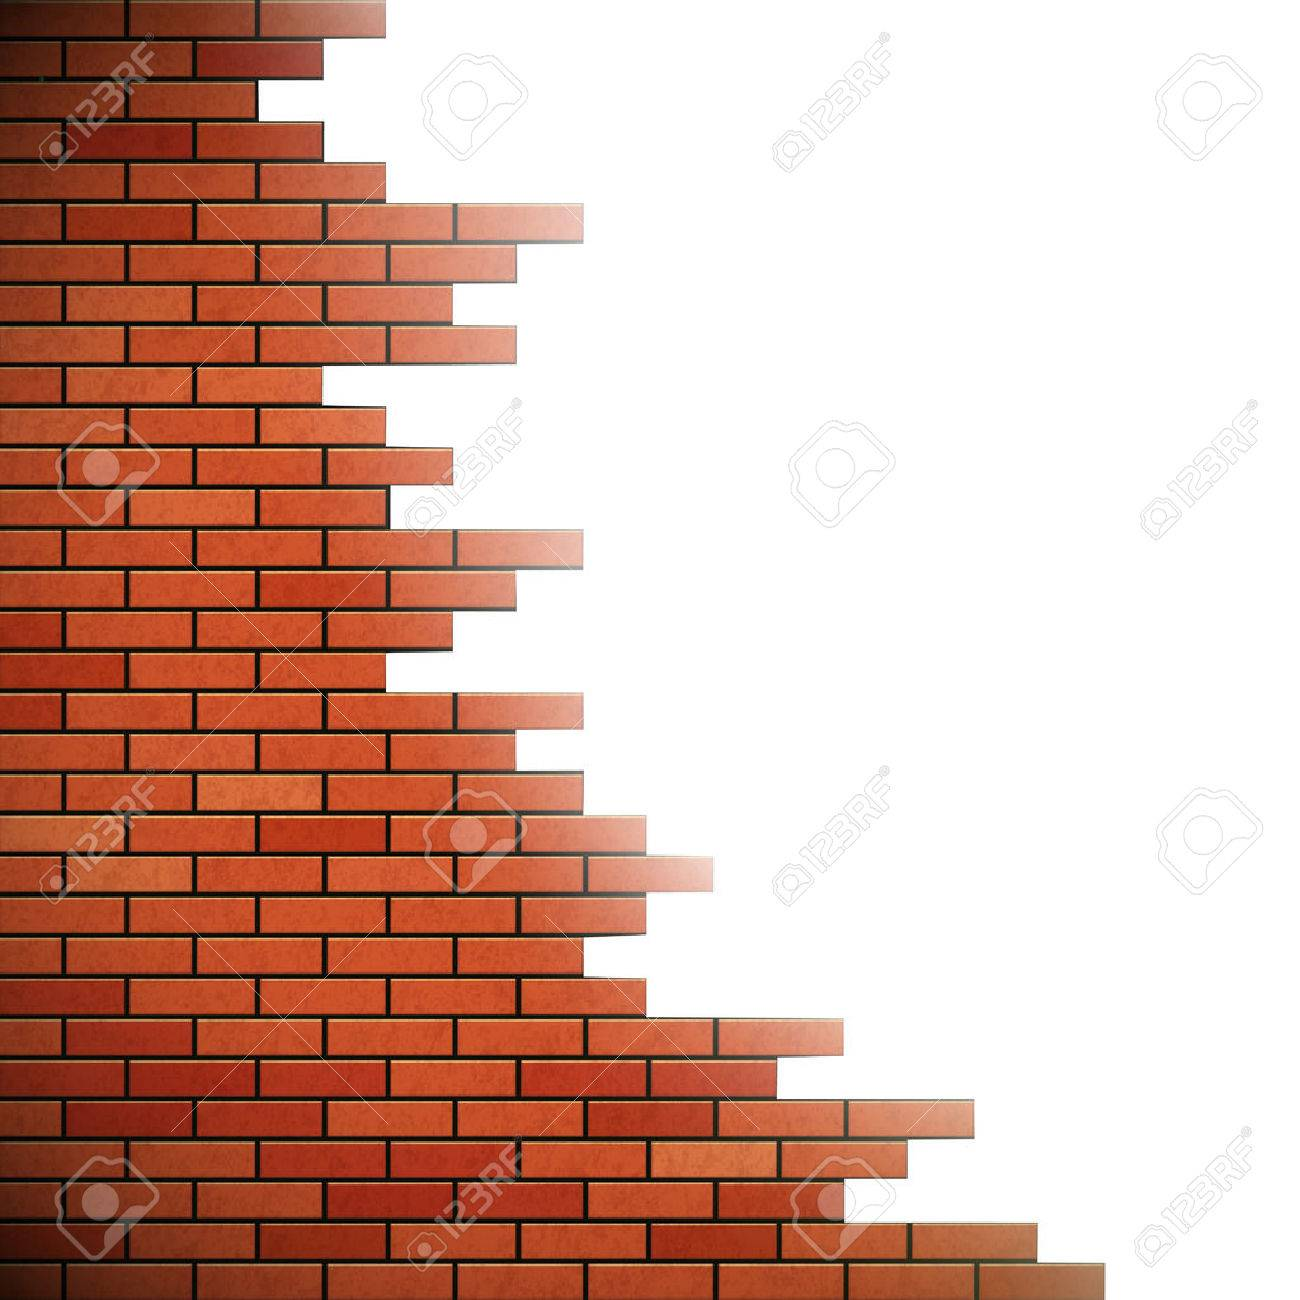 Wall of red brick. Hole in the wall. Stock vector illustration. - 51838052